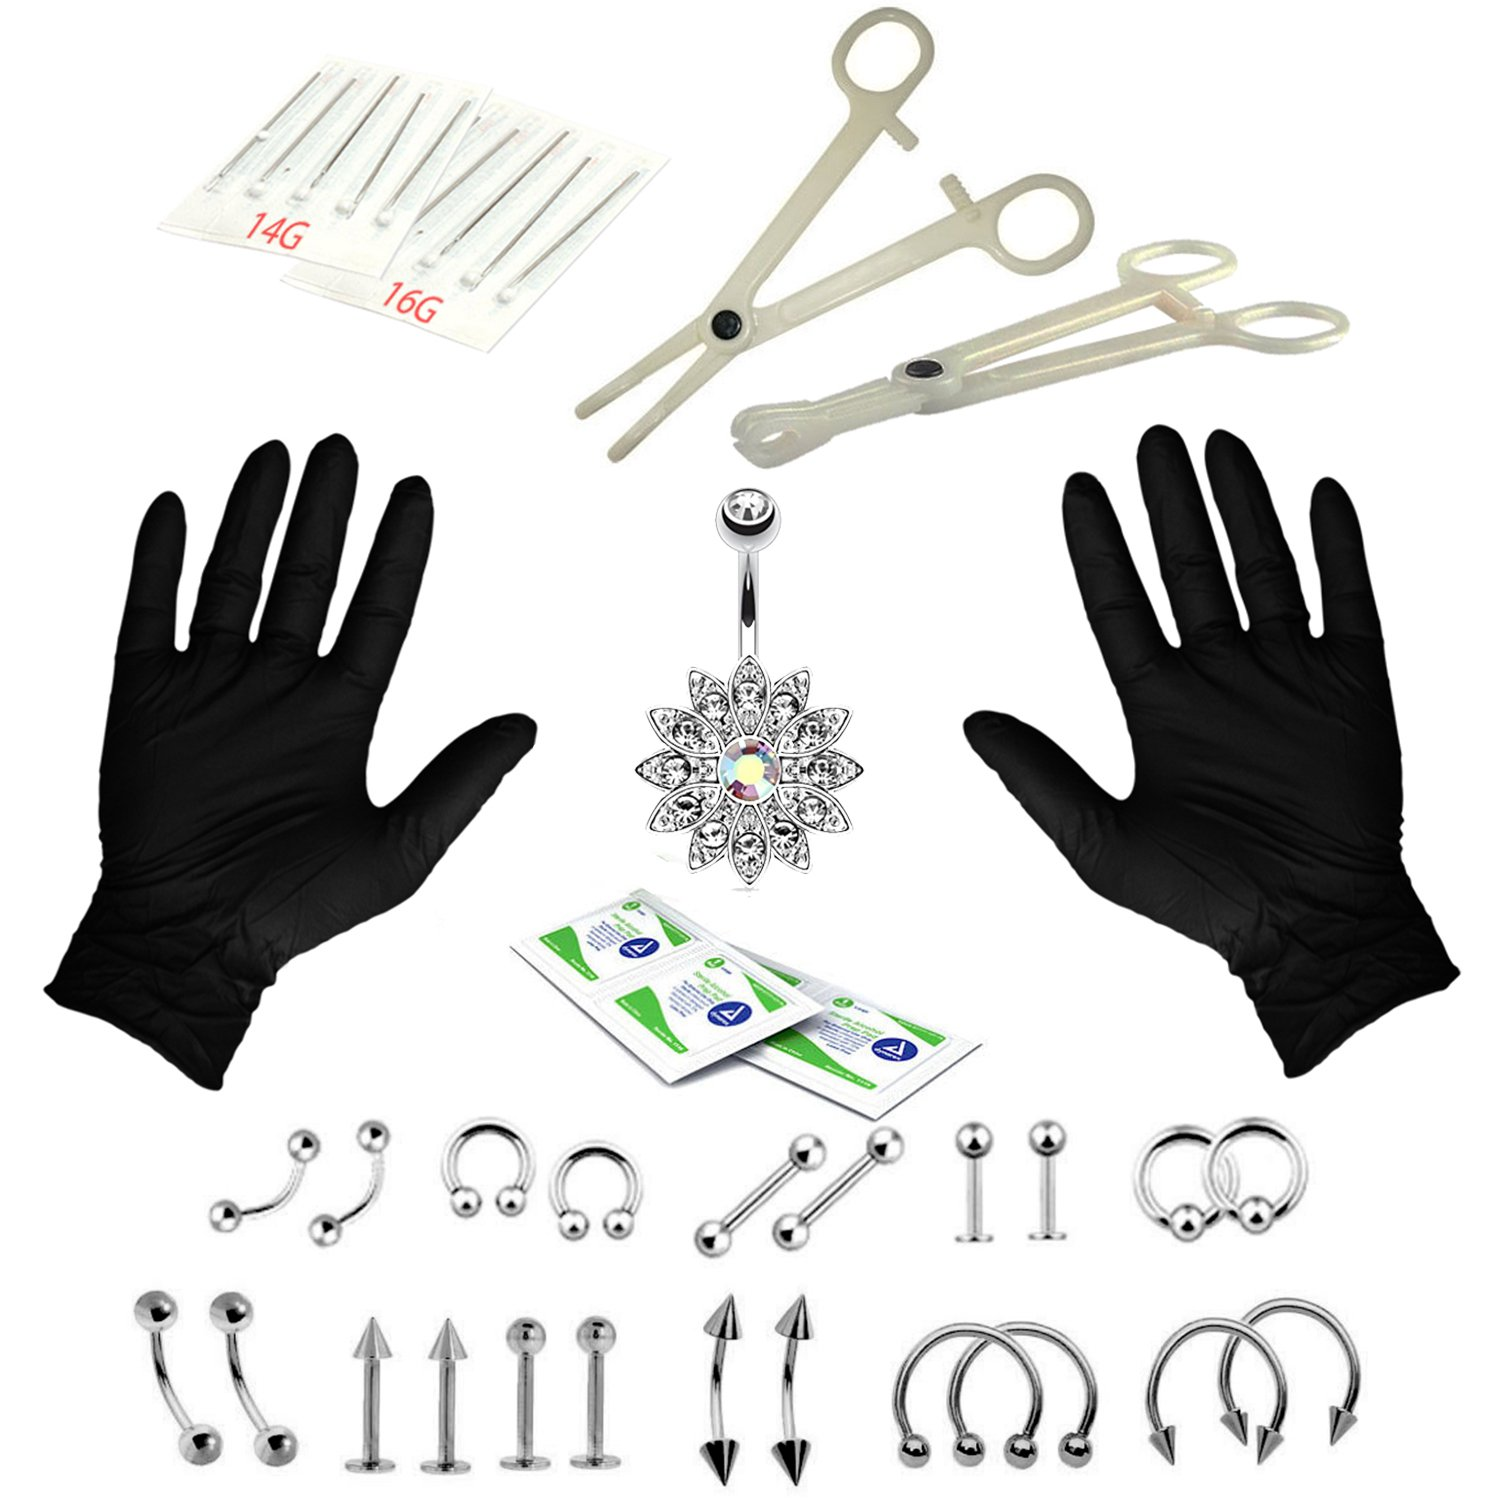 BodyJ4You 36PCS Professional Piercing Kit Stainless Steel 14G 16G Belly Ring Tongue Tragus Nipple Lip Nose Jewelry KT8083